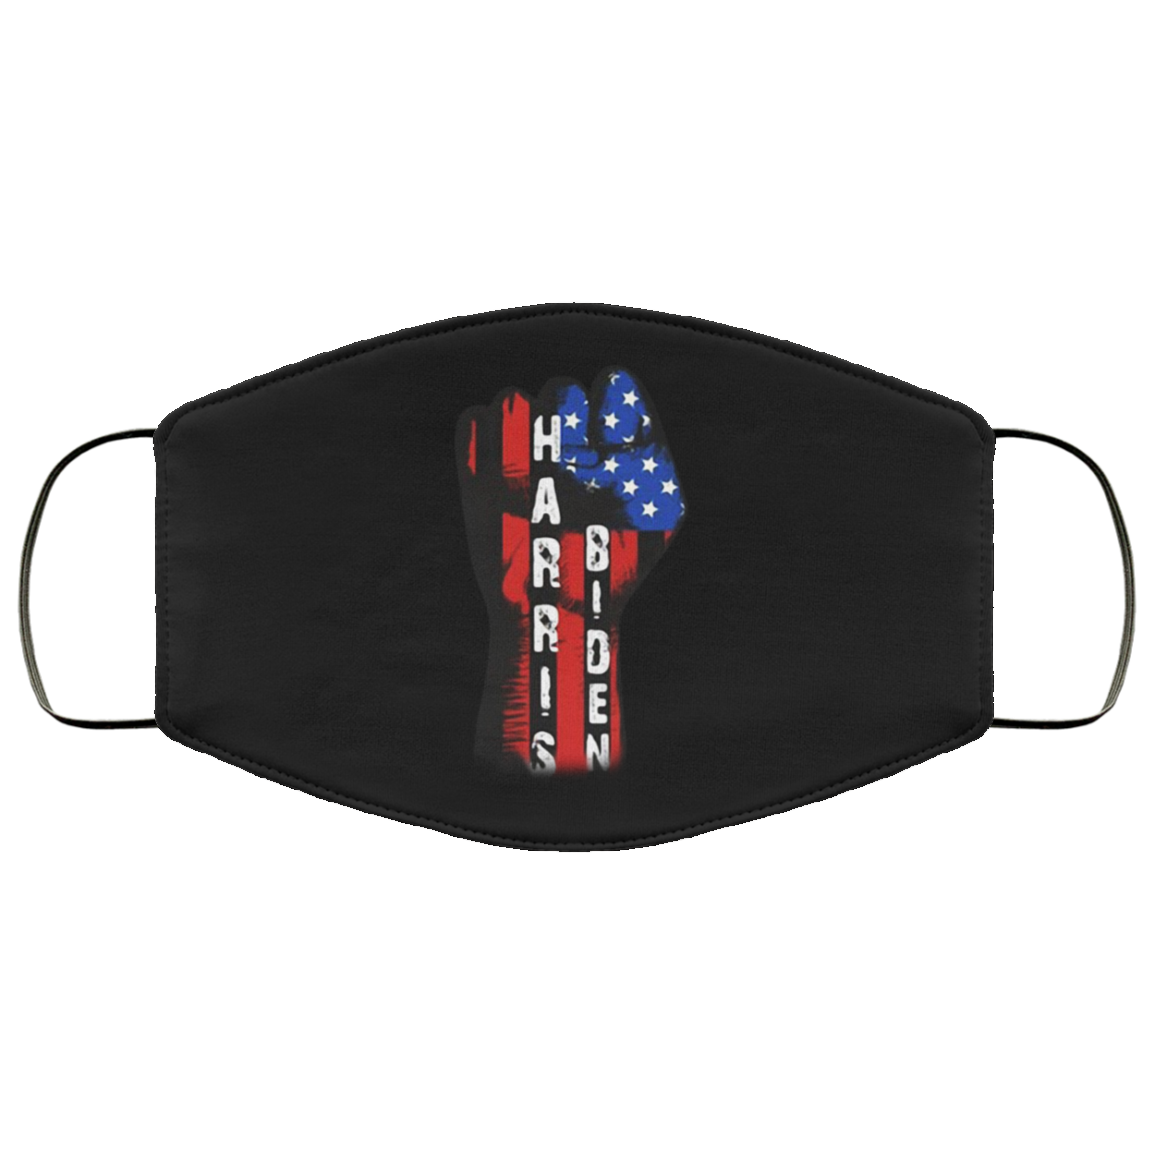 Biden Harris Face Mask For President Joe Biden Black Voters BLM Senator Kamala Harris AKA Face Mask